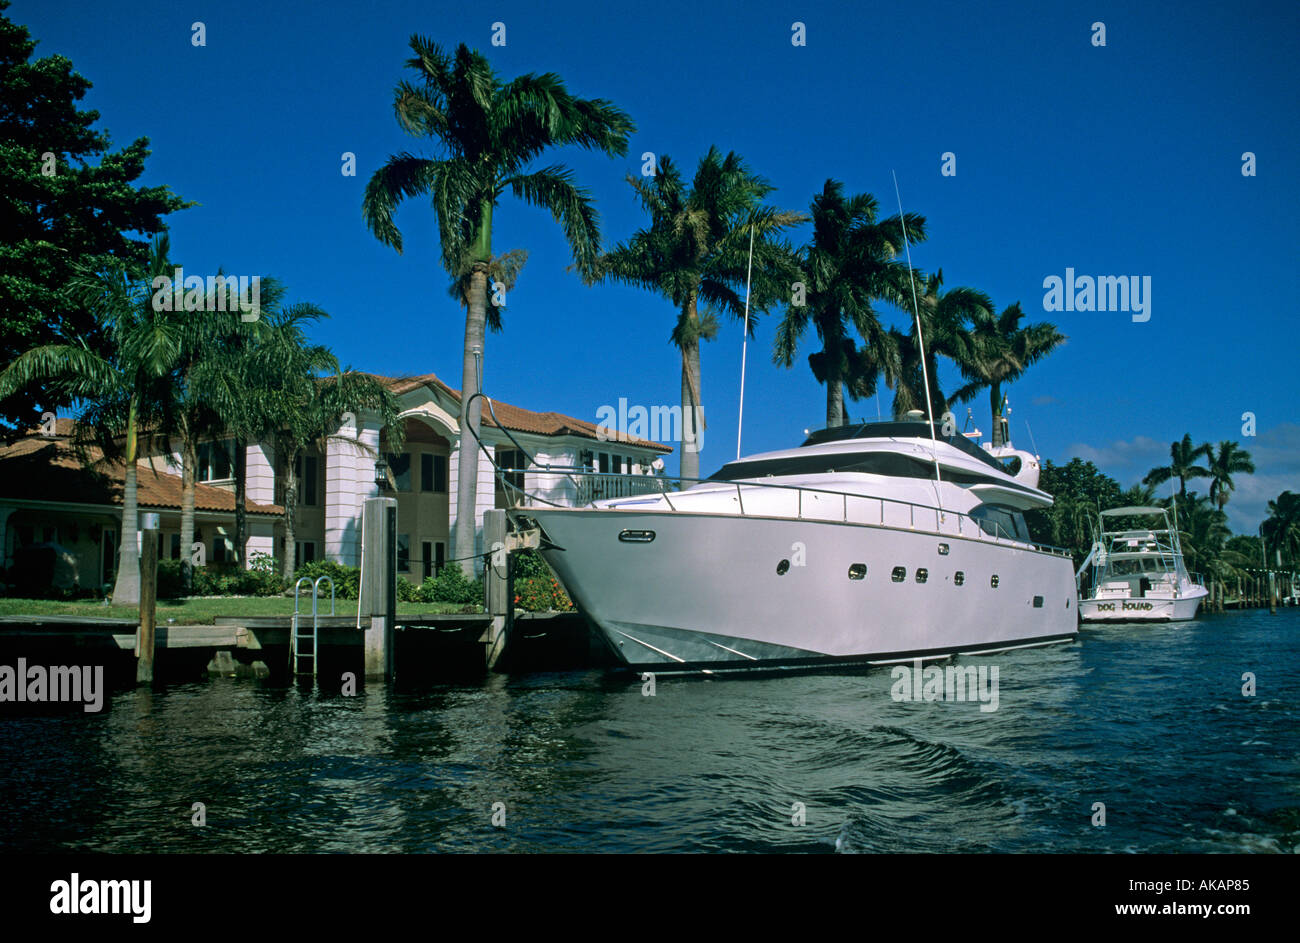 Luxury Homes With Super Yacht Moored In Inter Coastal Waterway Fort  Lauderdale Florida USA Lifestyle